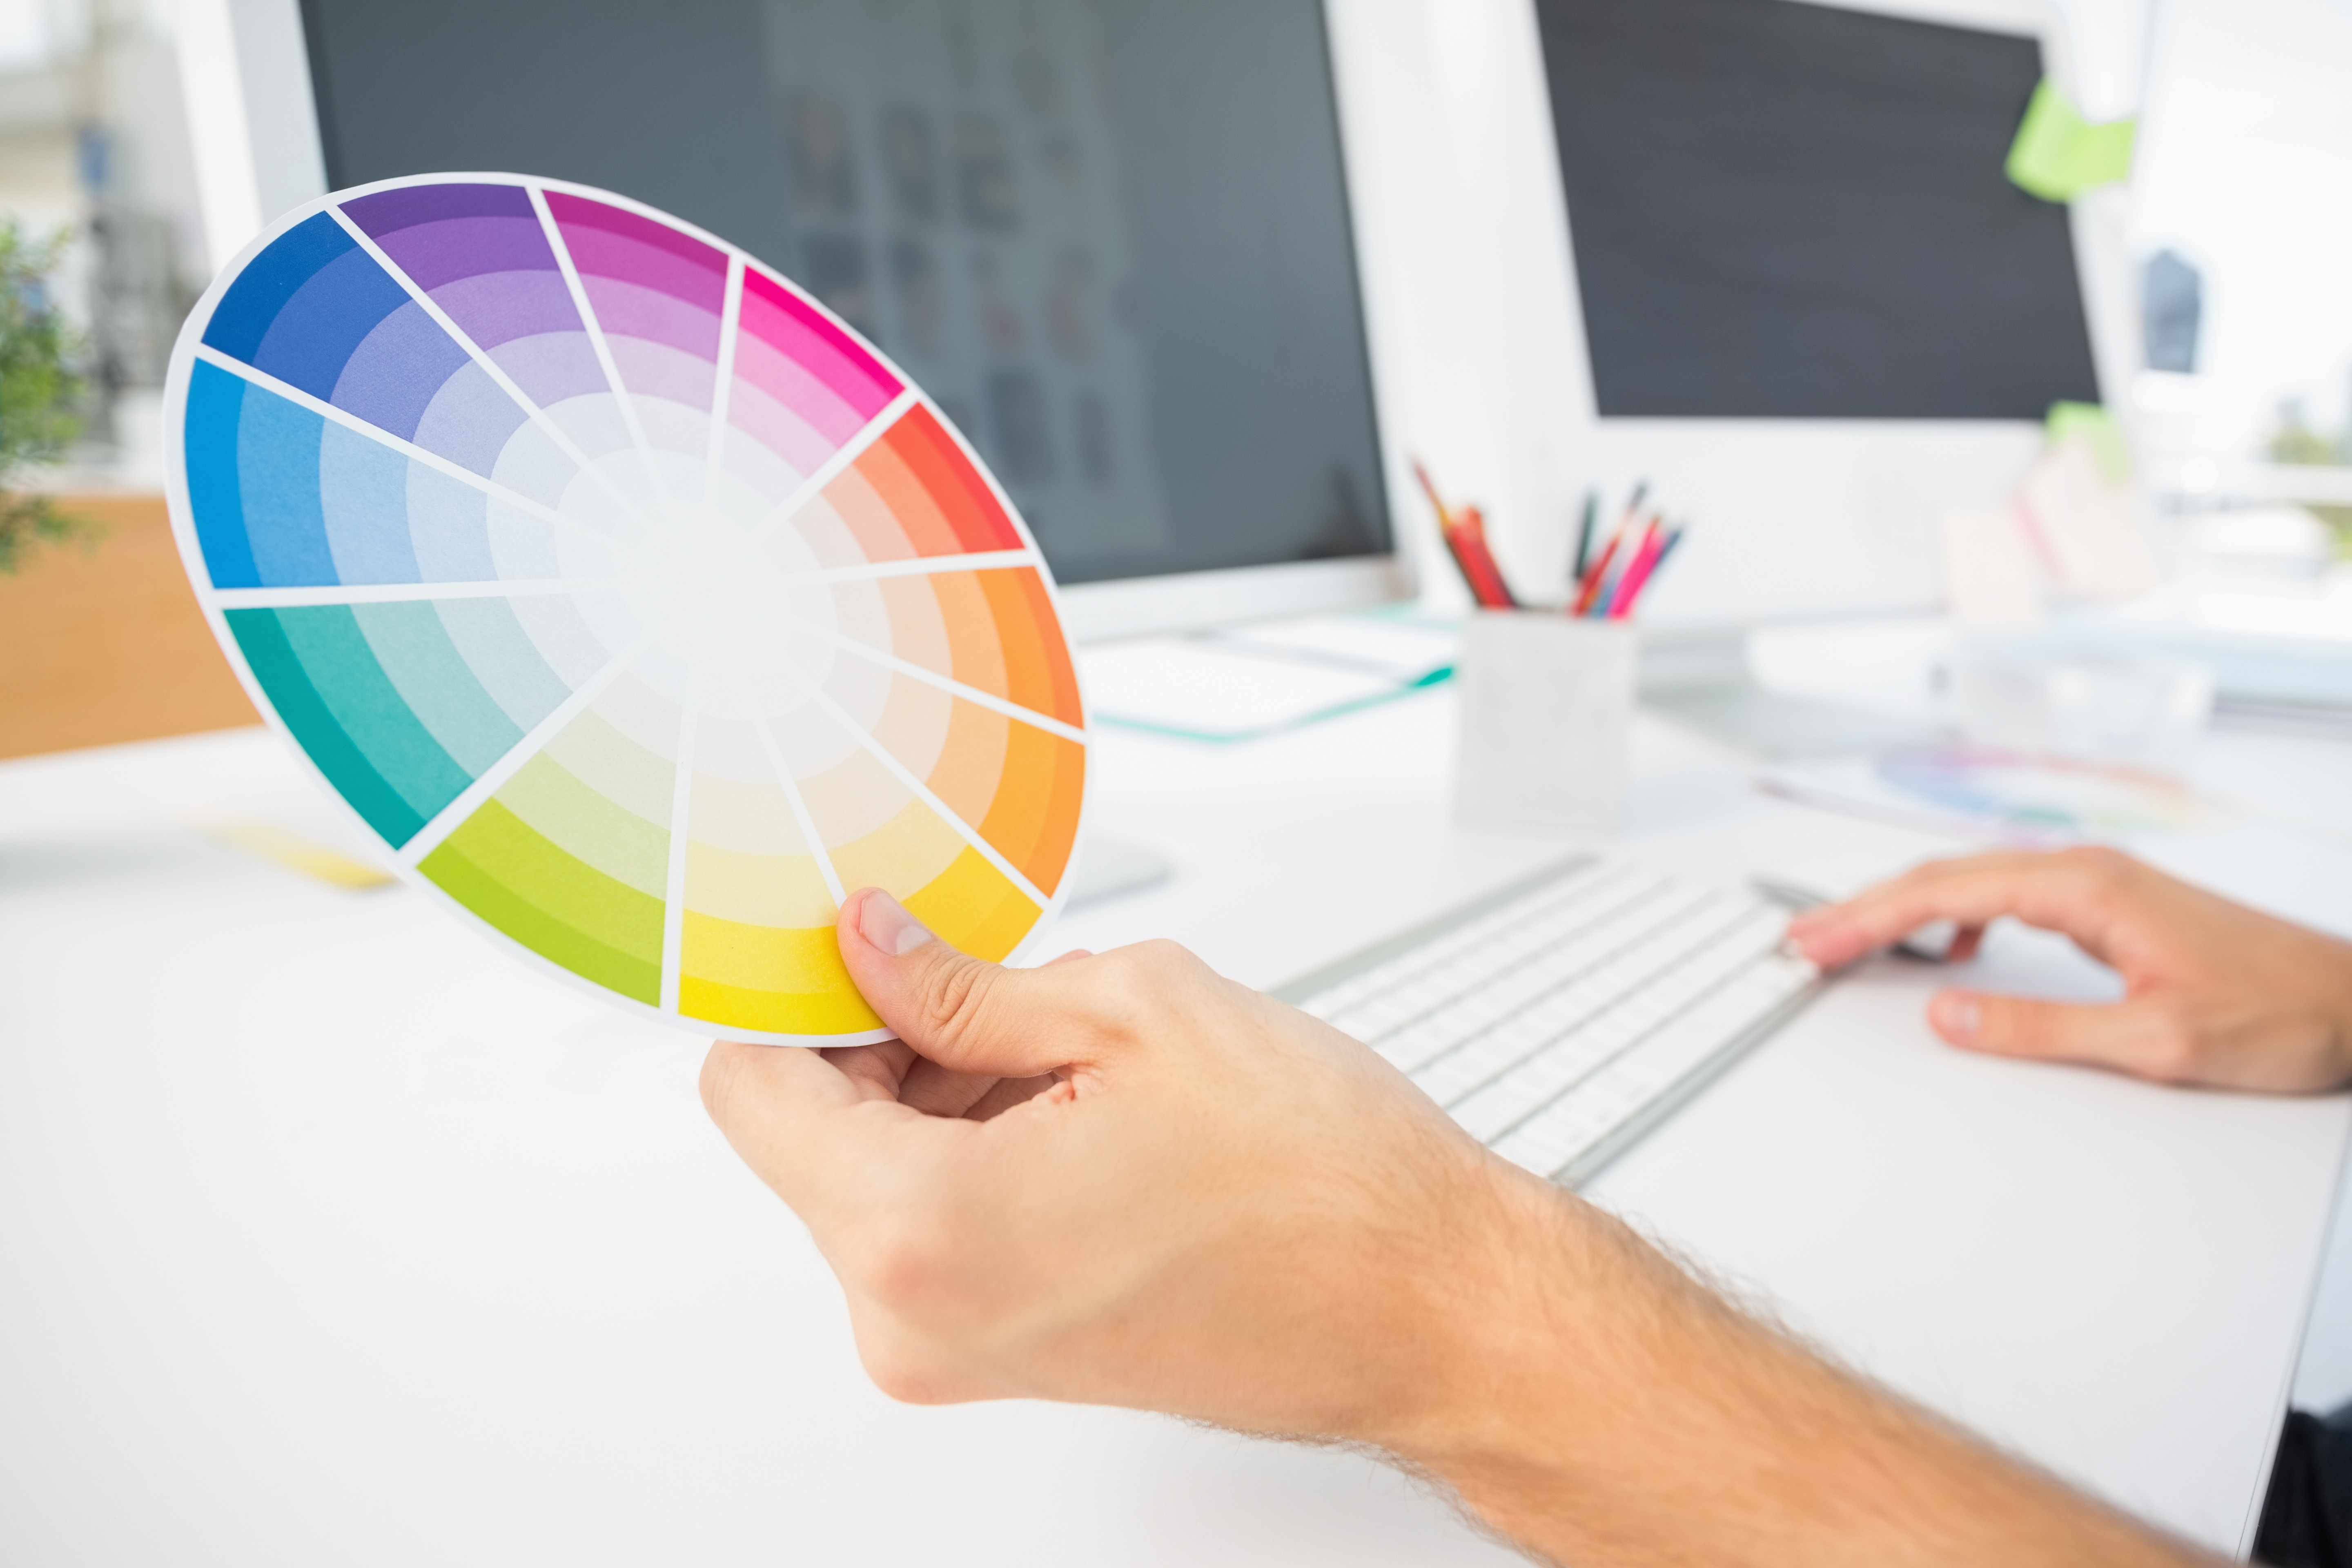 A graphic designer considers a color wheel